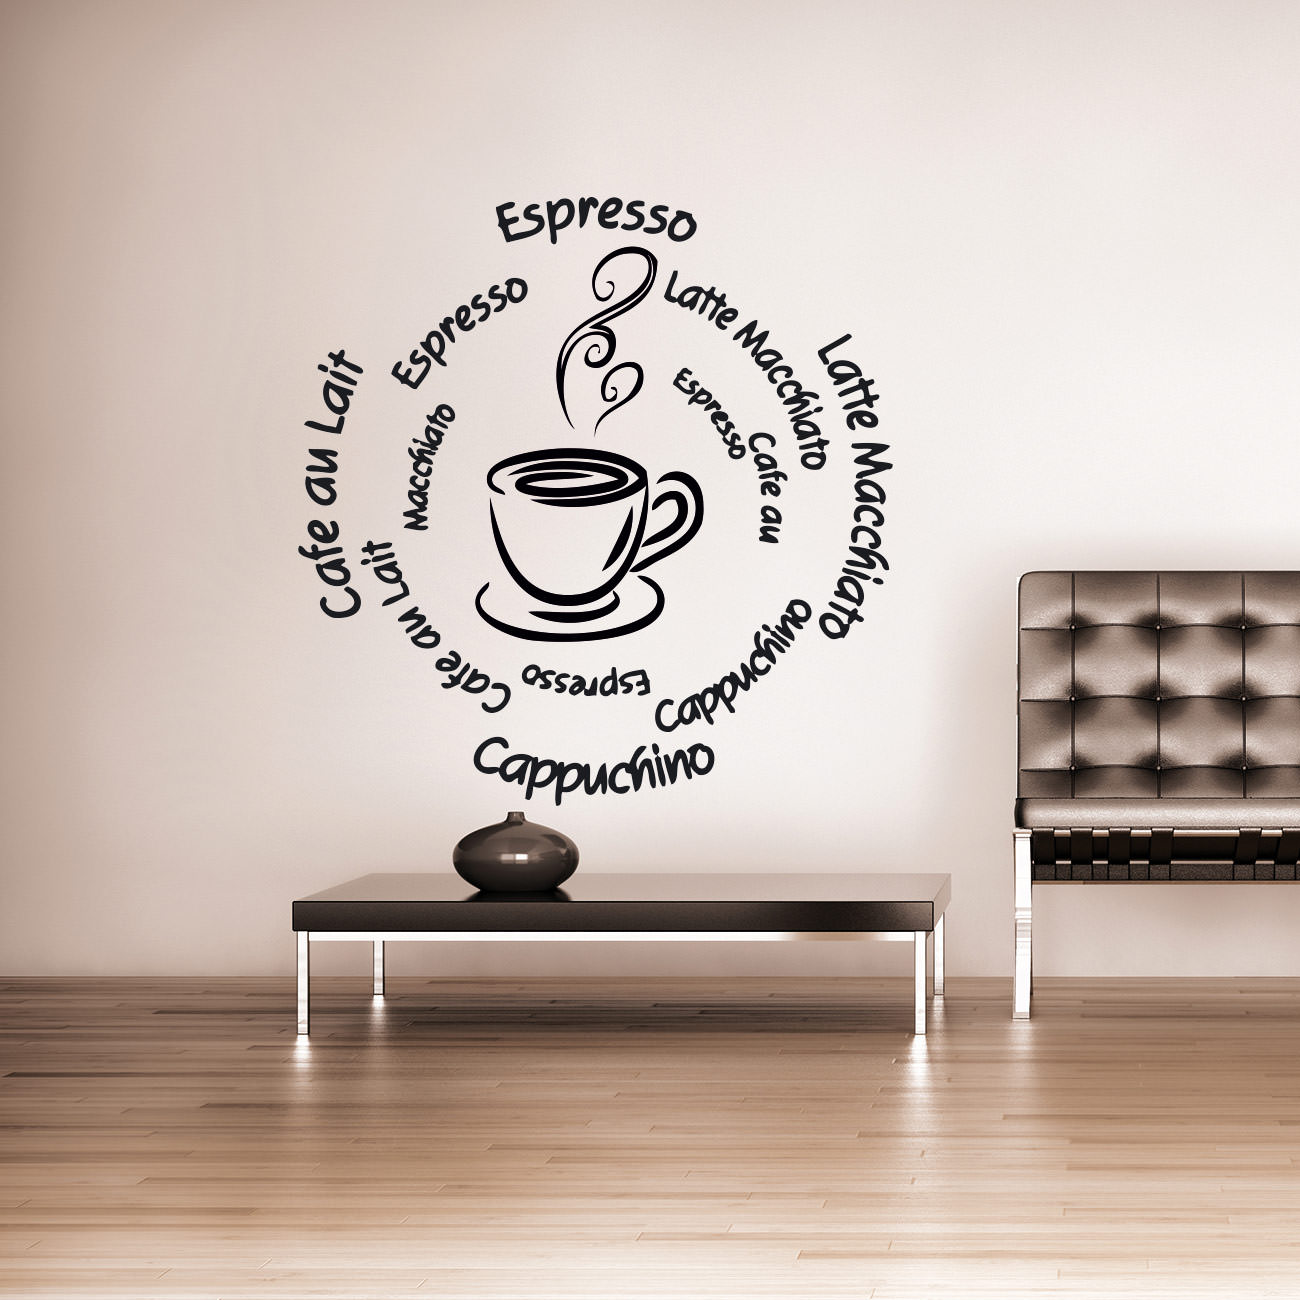 kaffeesorten mocca cappucchino espresso f r wohnzimmer k che wandtattoo. Black Bedroom Furniture Sets. Home Design Ideas